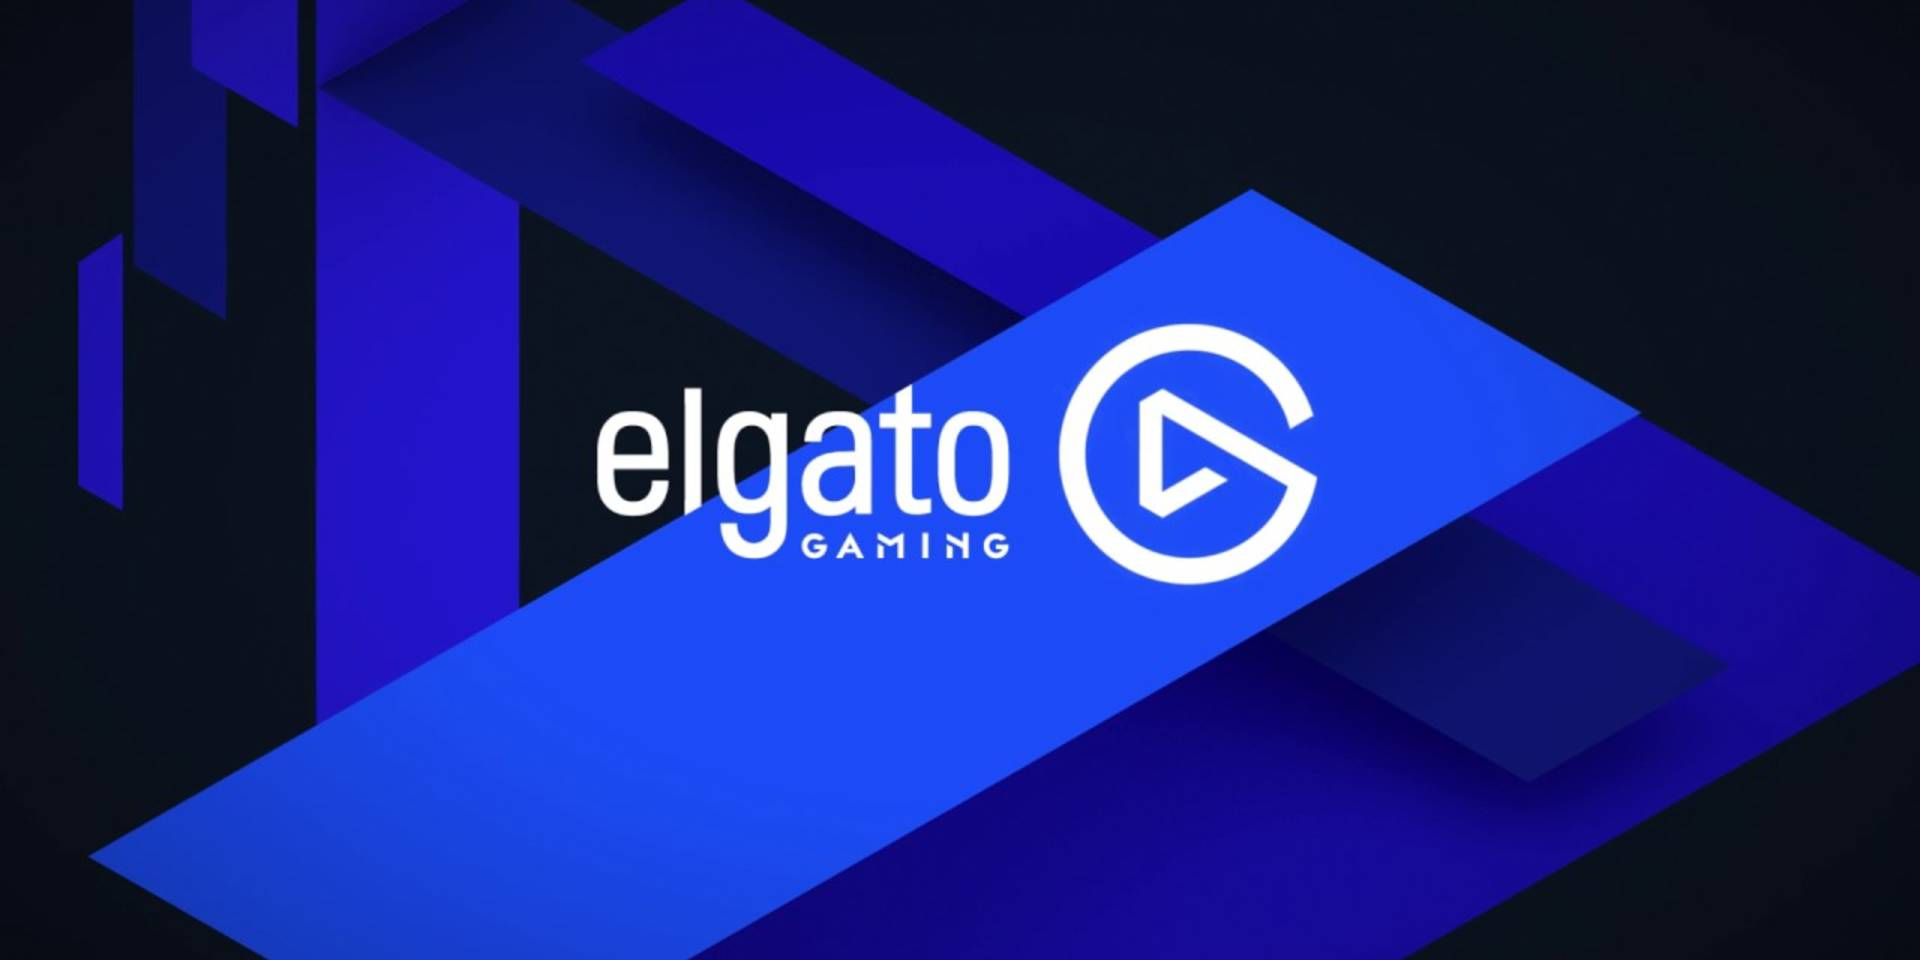 Elgato Gaming introduces an all-new logo and design with a modern ...